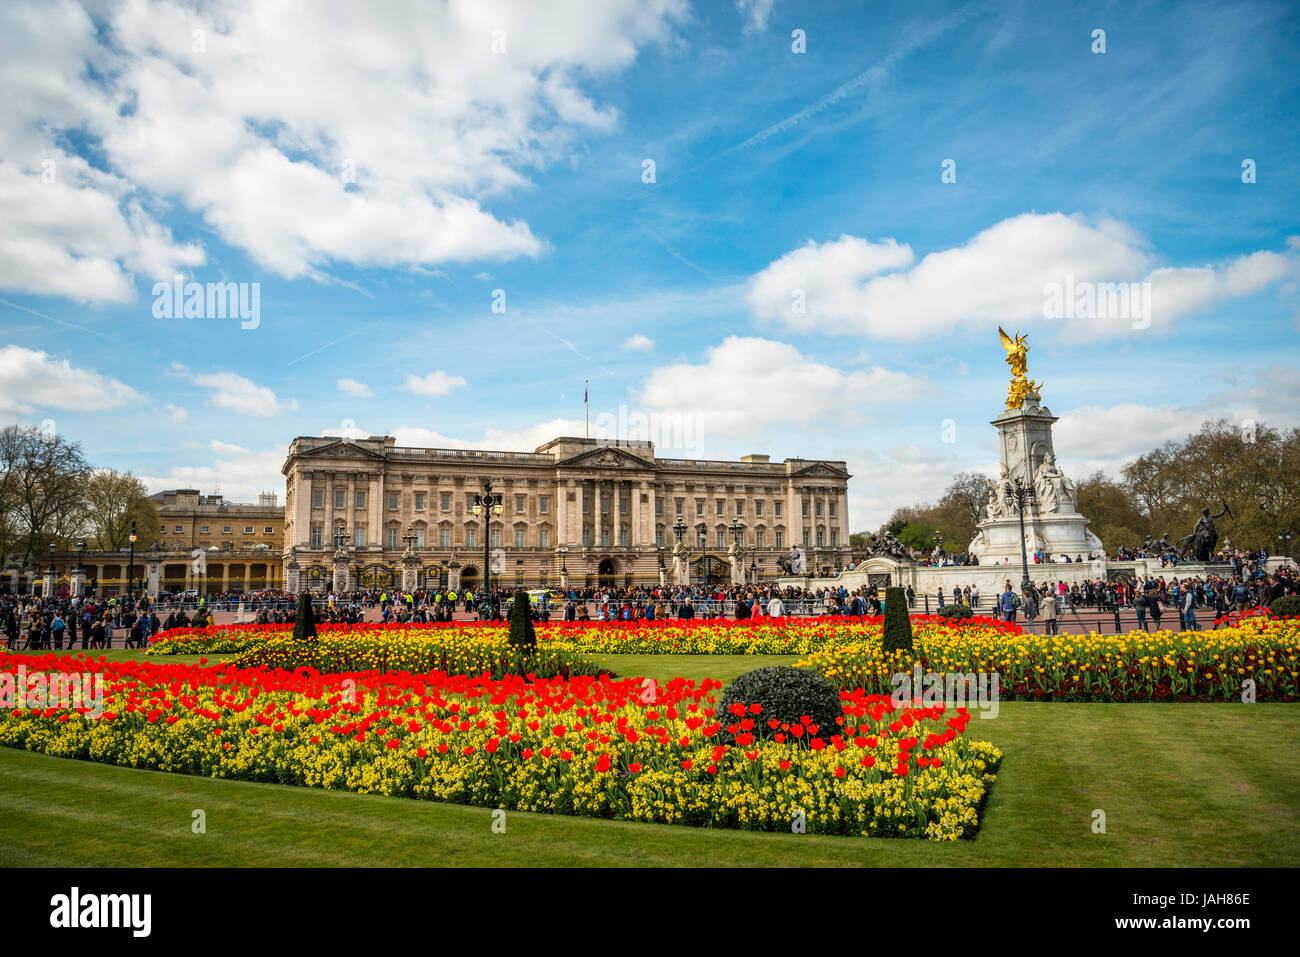 Buckingham Palace and Victoria Memorial, Westminster, London, England, United Kingdom - Stock Image